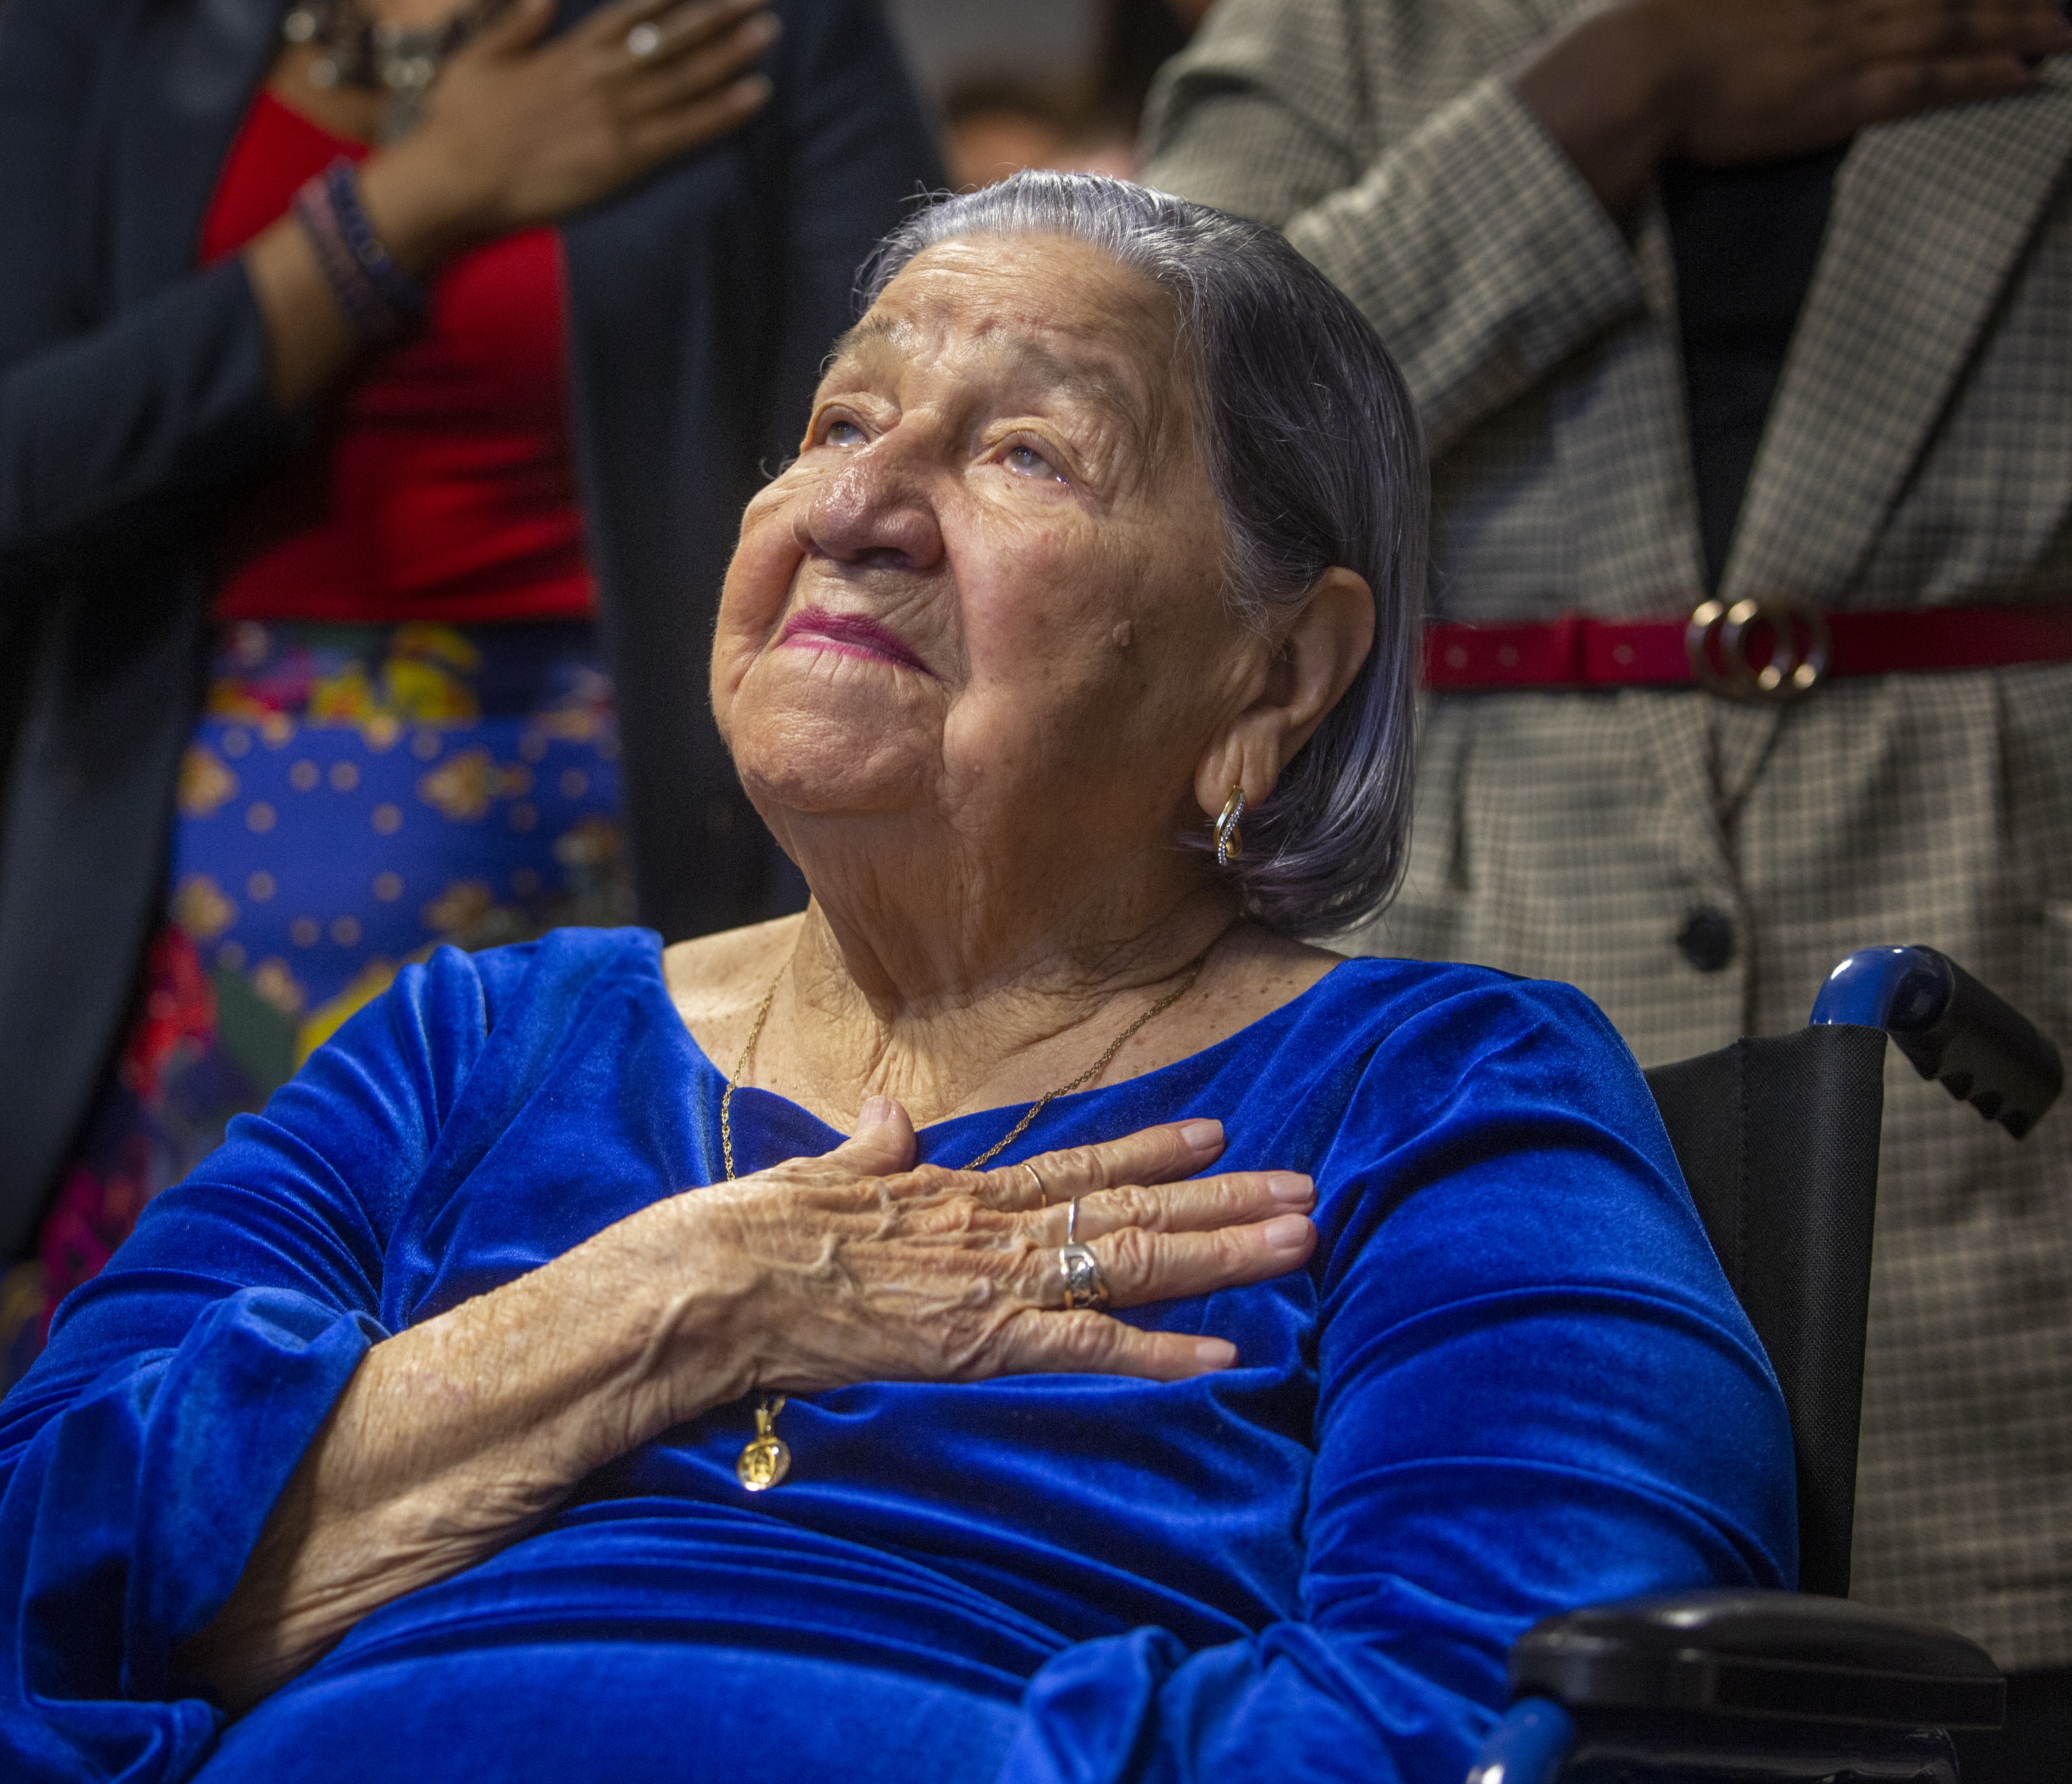 106-year-old woman with desire to vote becomes a citizen